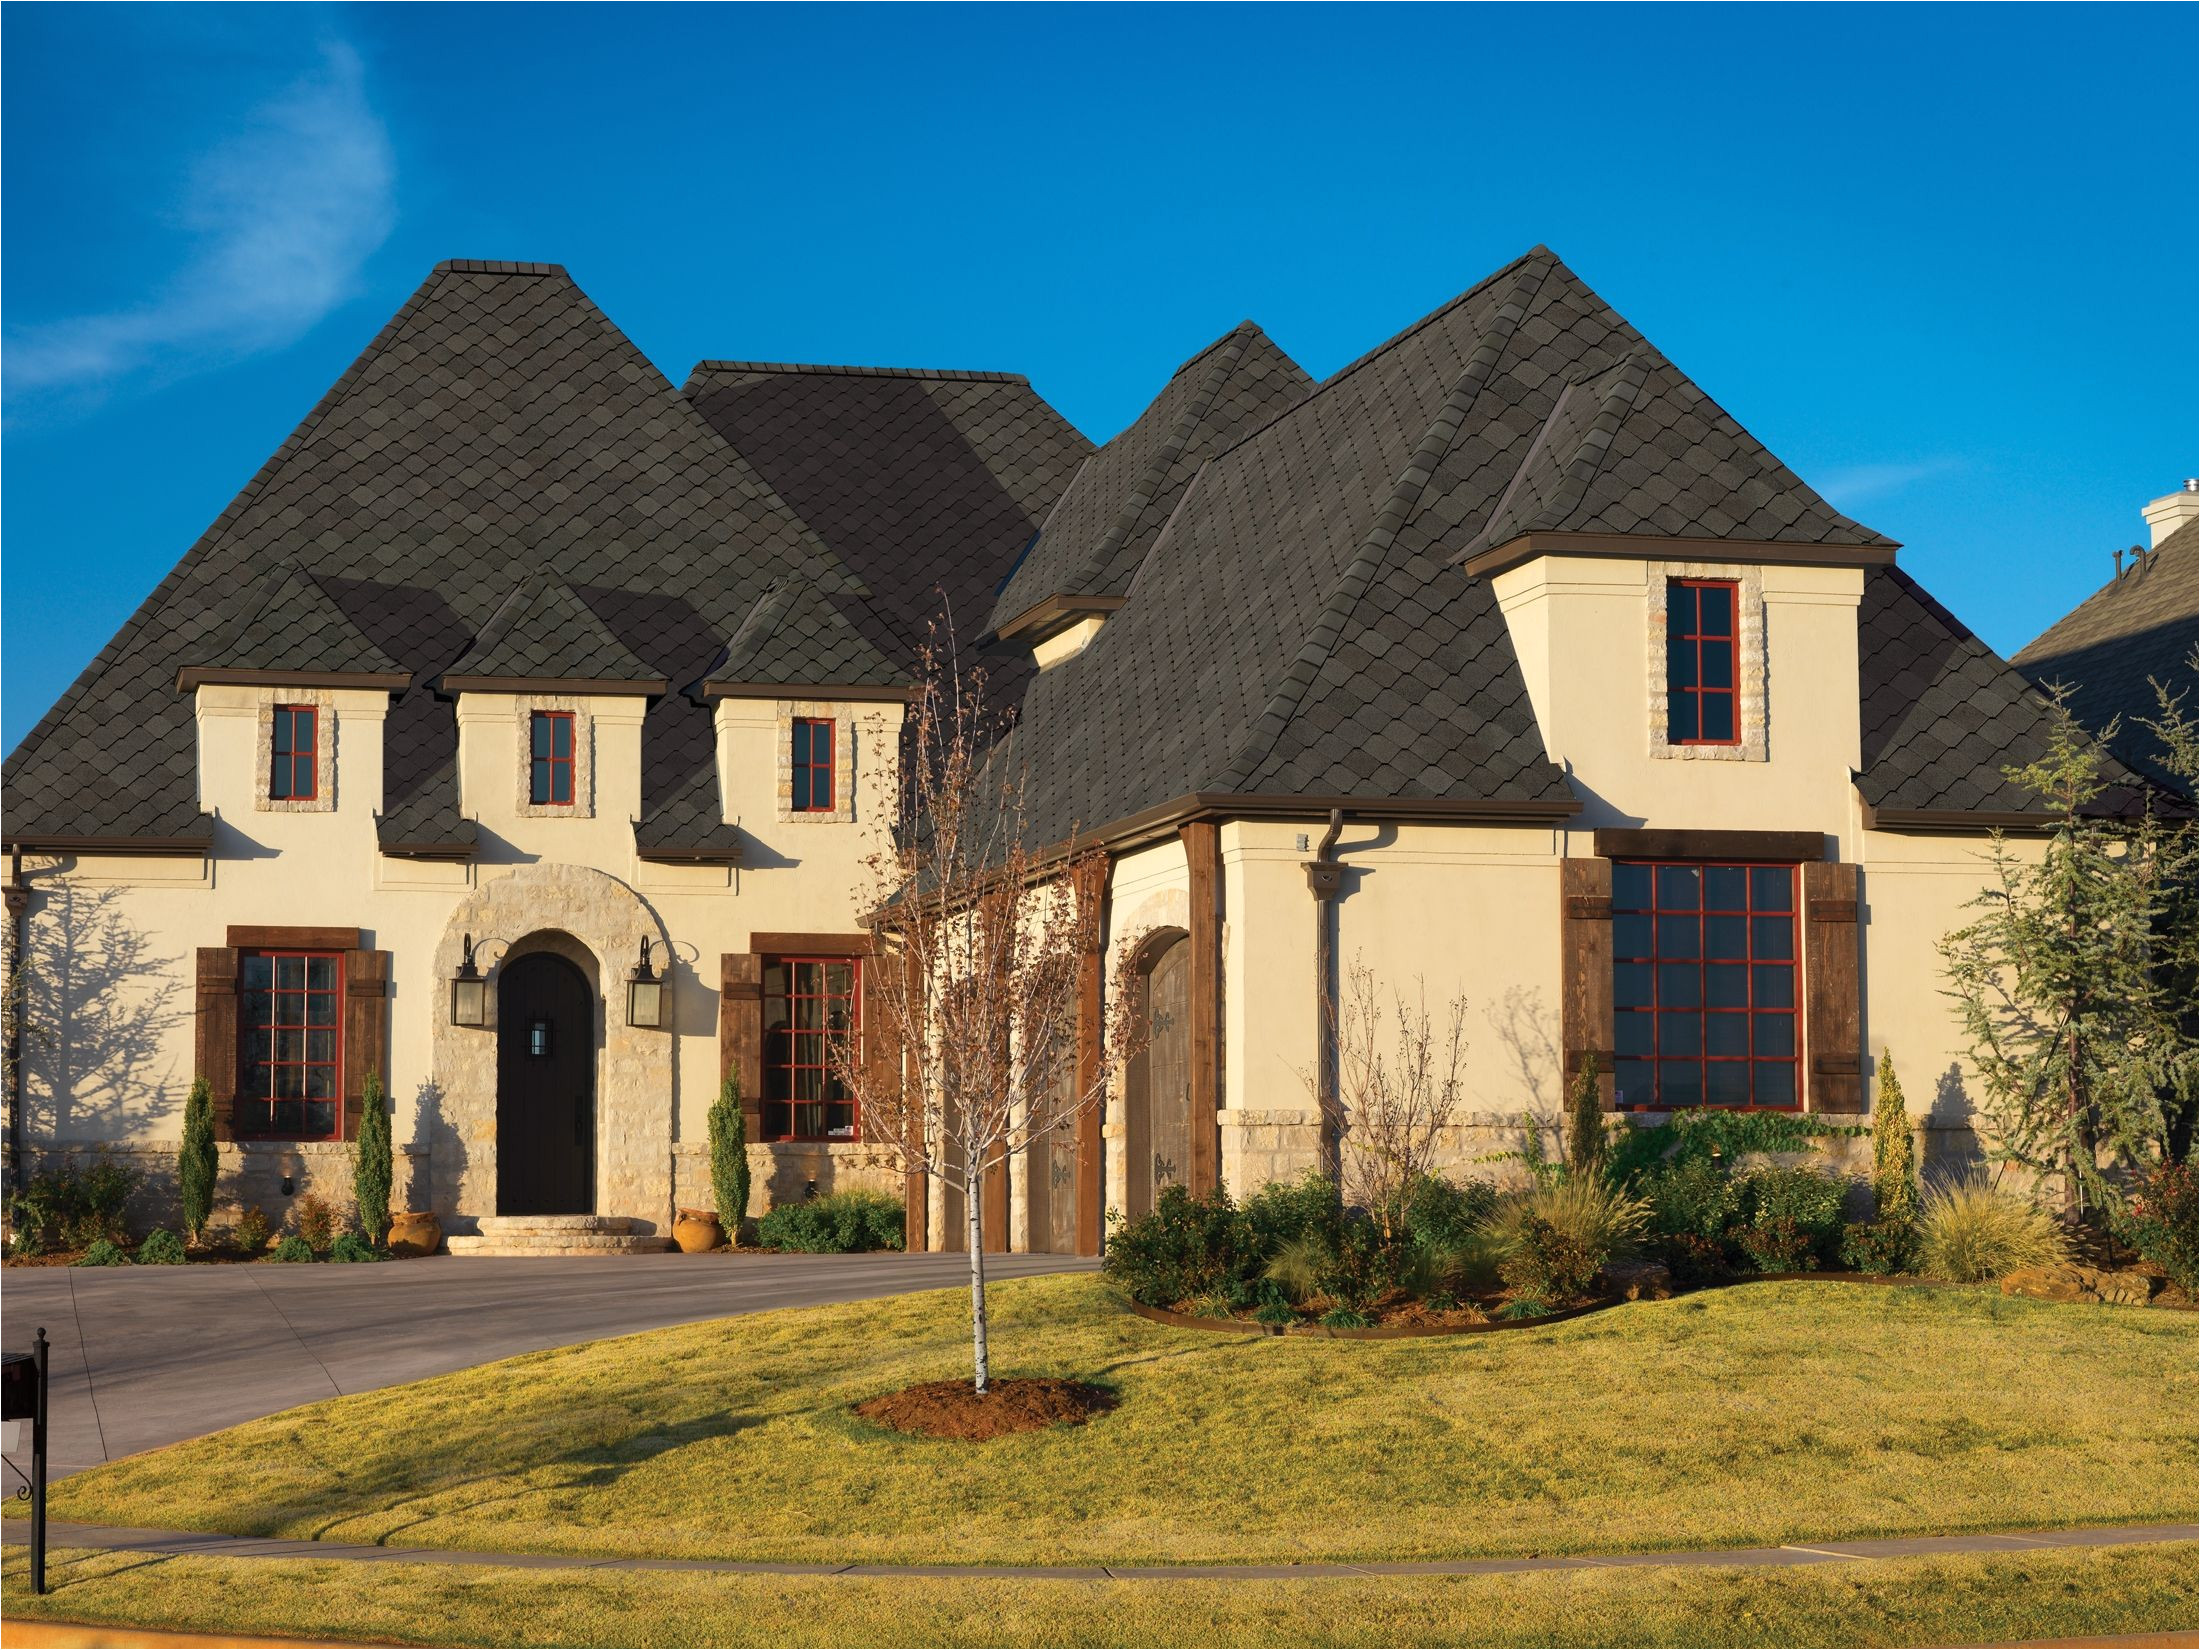 293 best roofing images residential roofing roofing companies roofing contractors